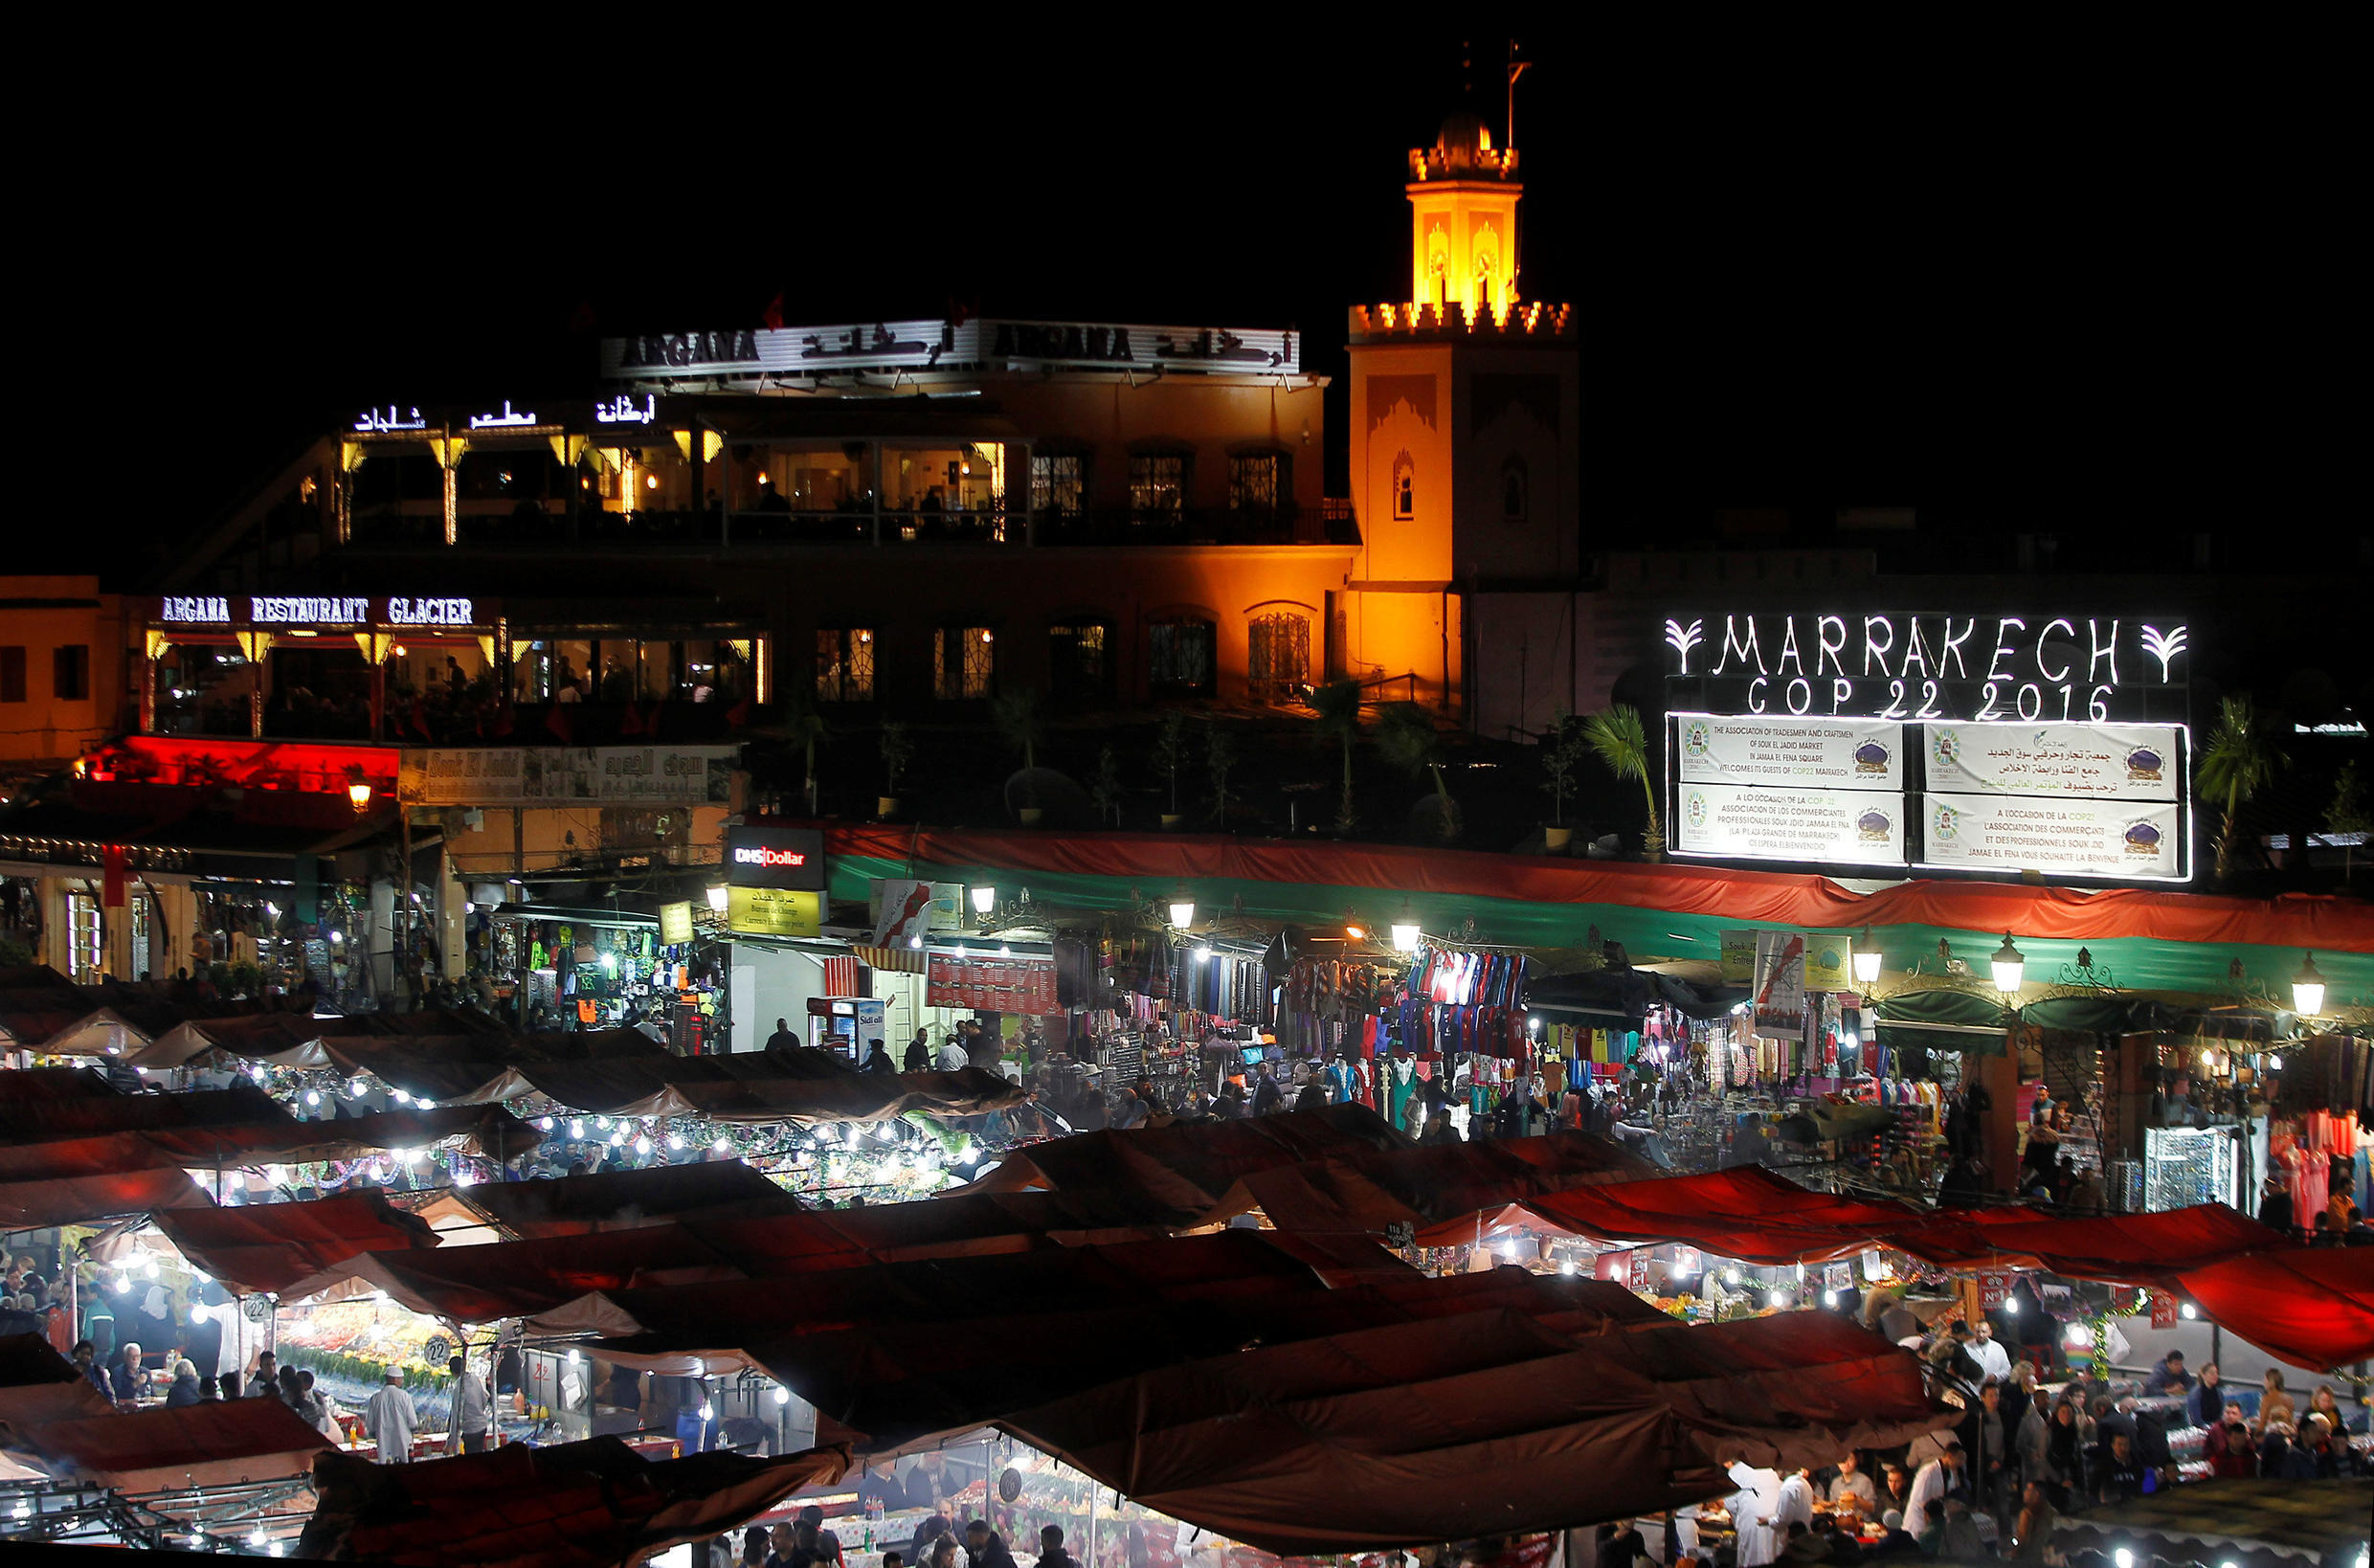 The Jamaa el Fena square is seen in Marrakech, Morocco, the city which is hosting the UN Climate Change Conference 2016 (COP22).